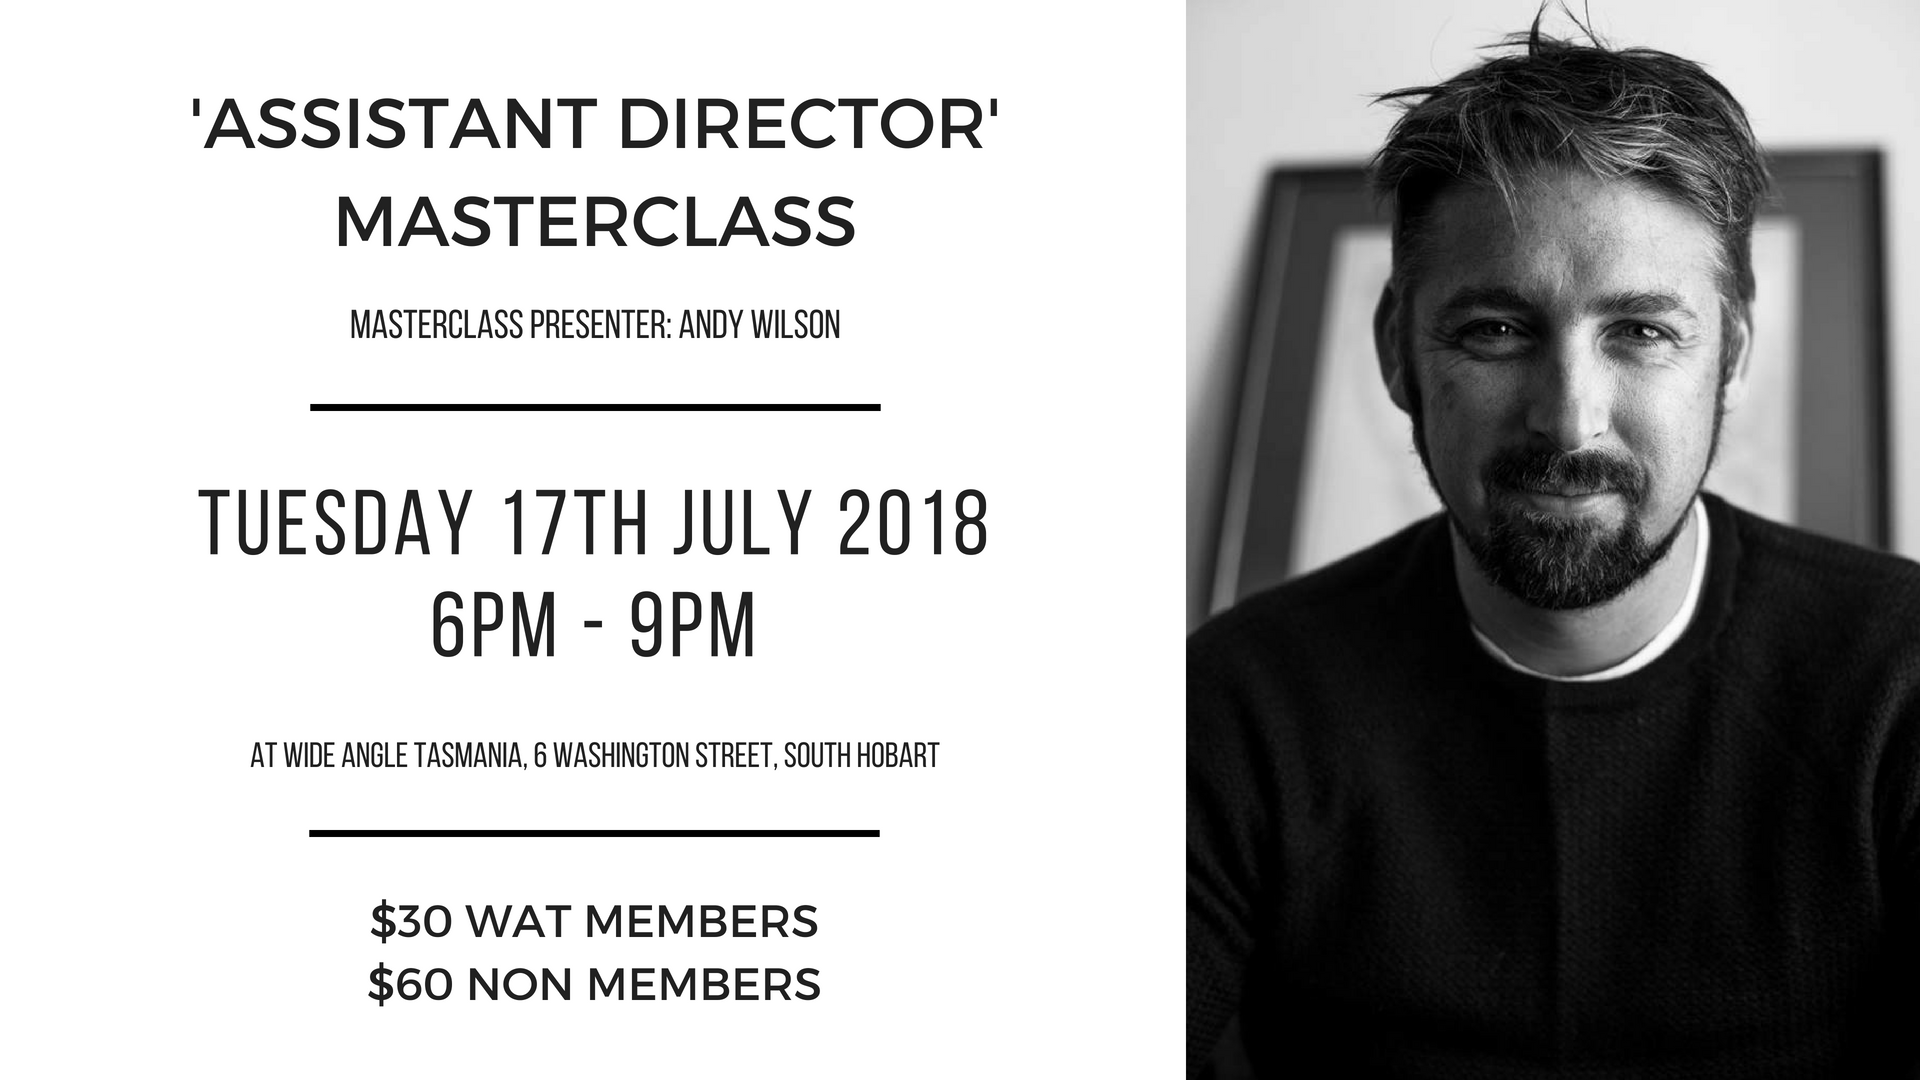 Andy_Wilson_Assistant_Director_Masterclass_Tues_17th_July_2018_Facebook_Event_Cover.png